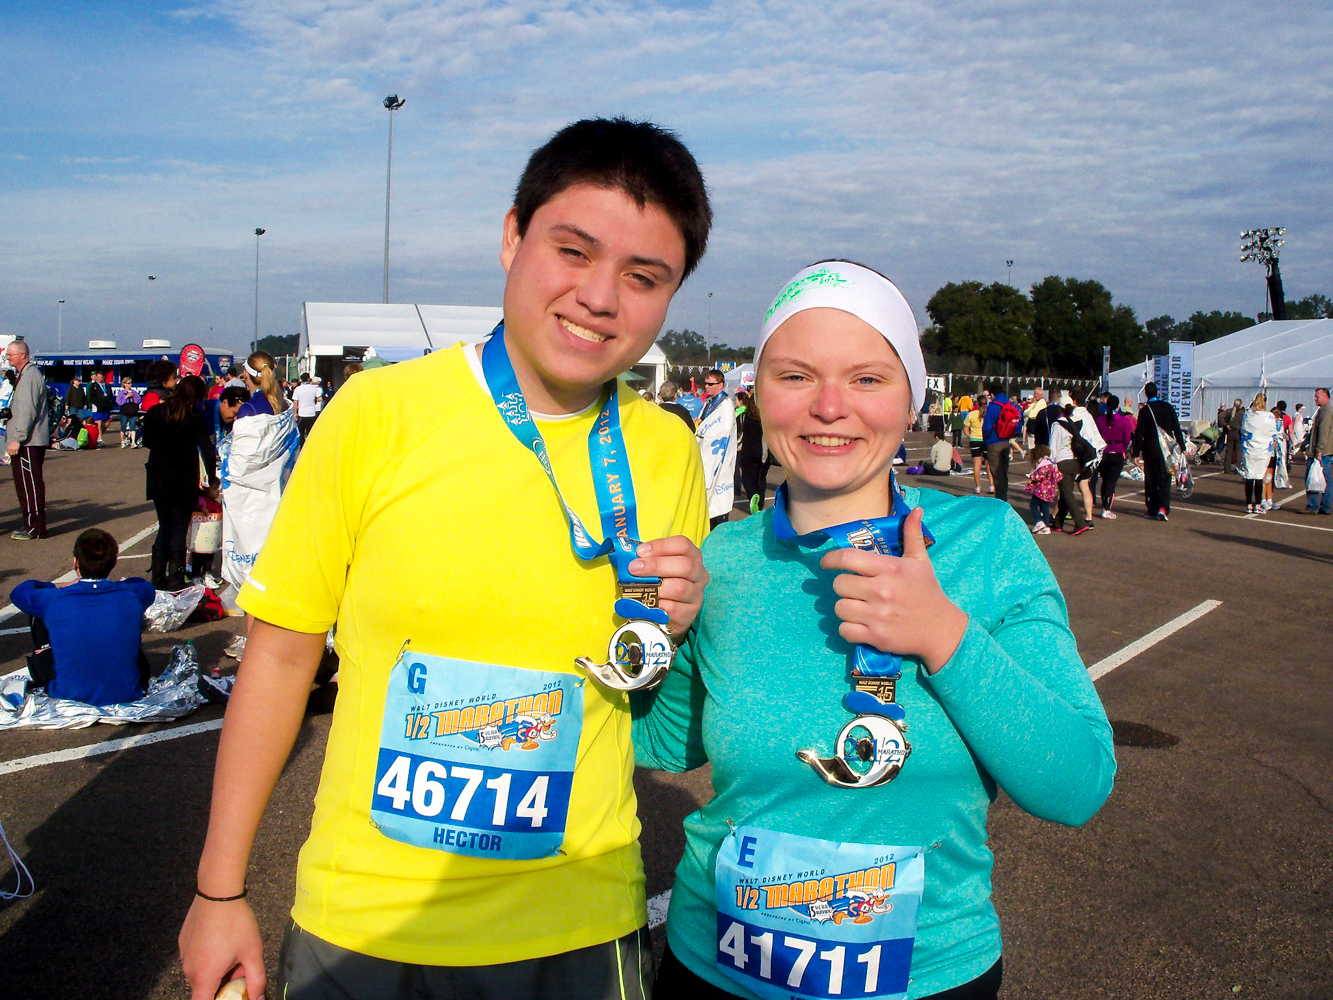 a fun way to have an active vacation is to participate in a runDisney event. #disney #running